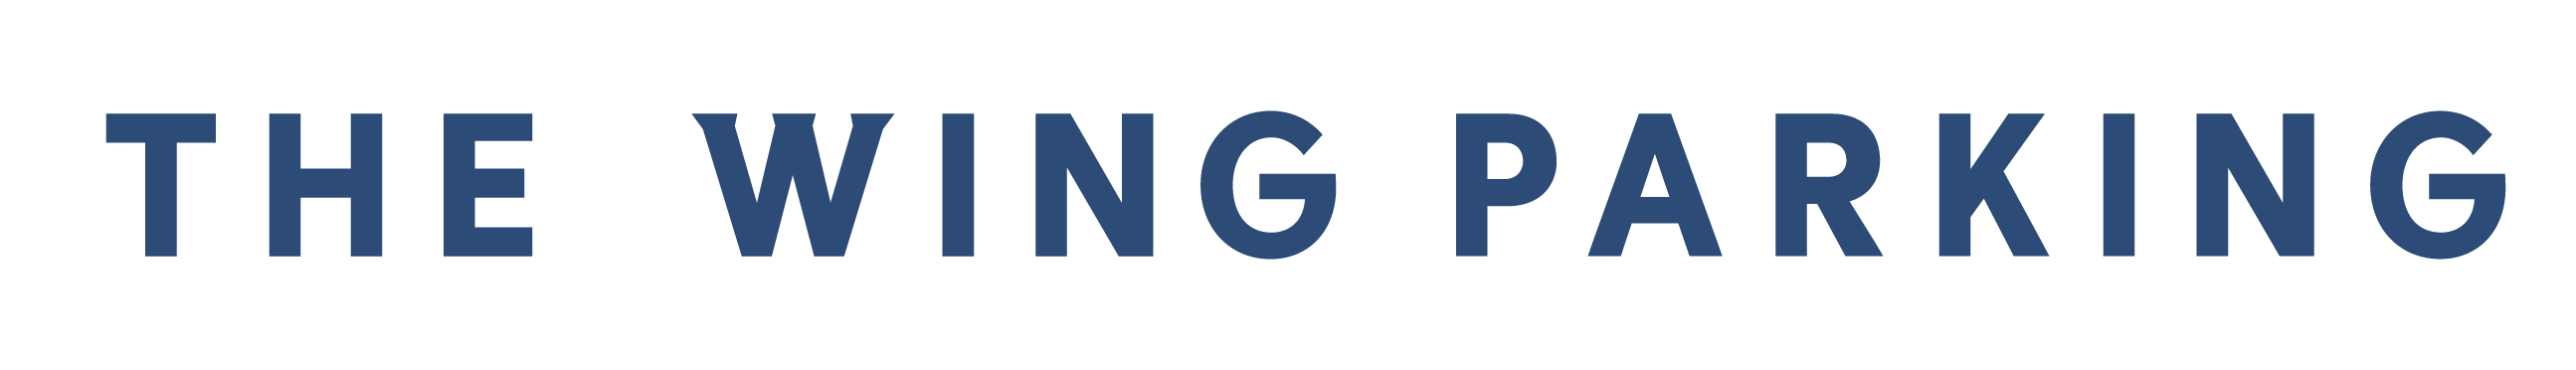 The Wing Parking logo